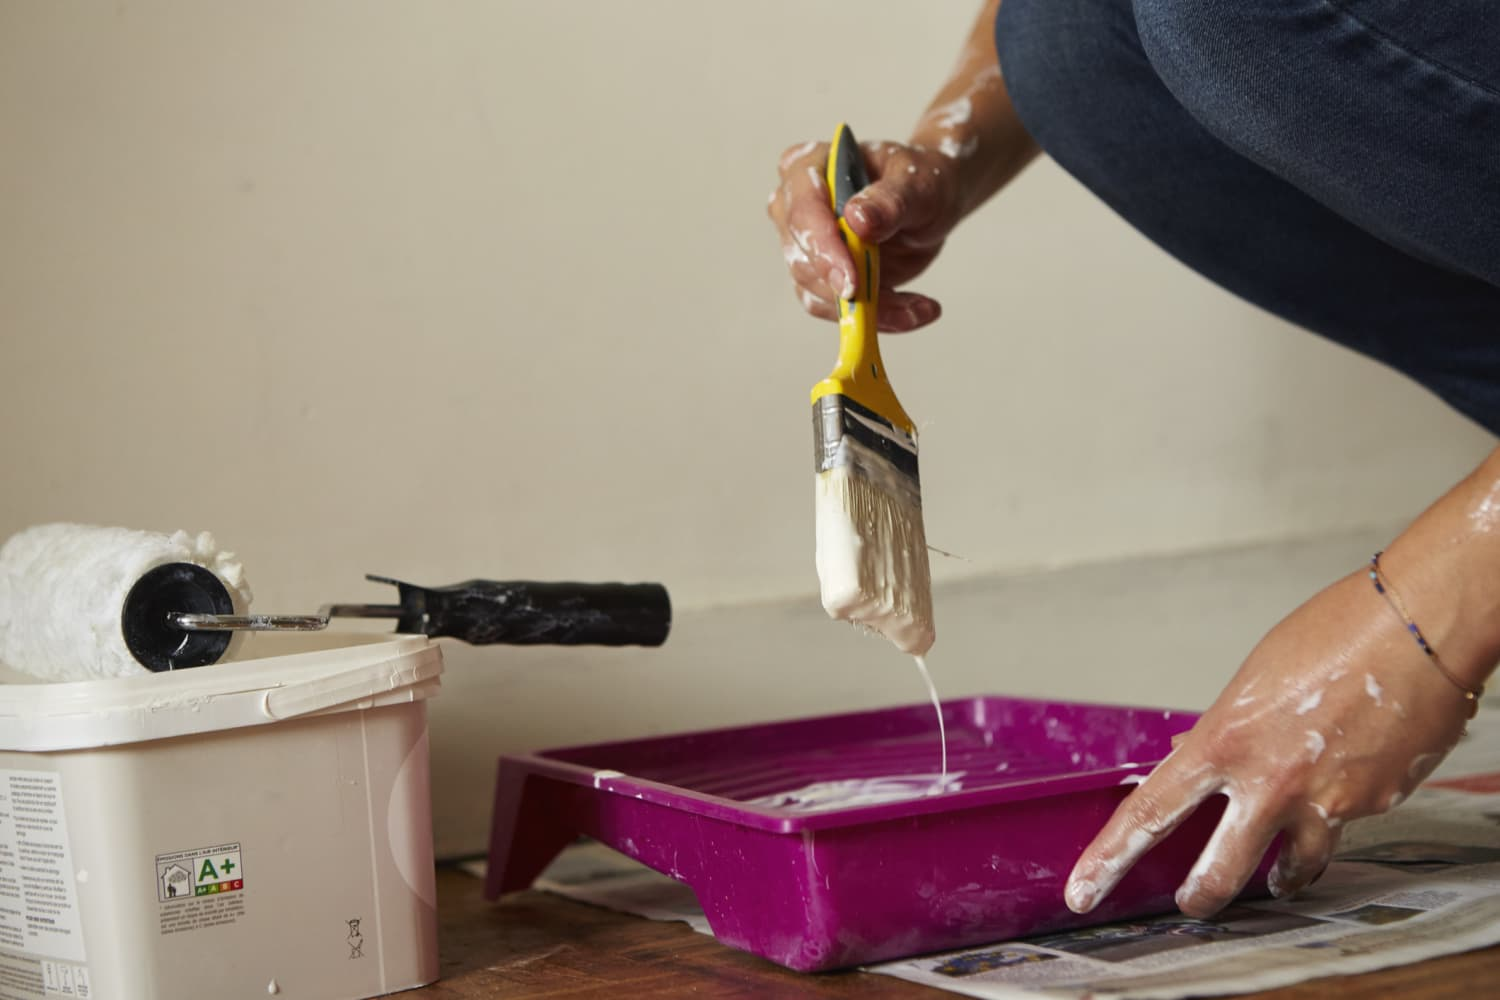 The Top 5 Mistakes Pro Painters Wish You'd Stop Making